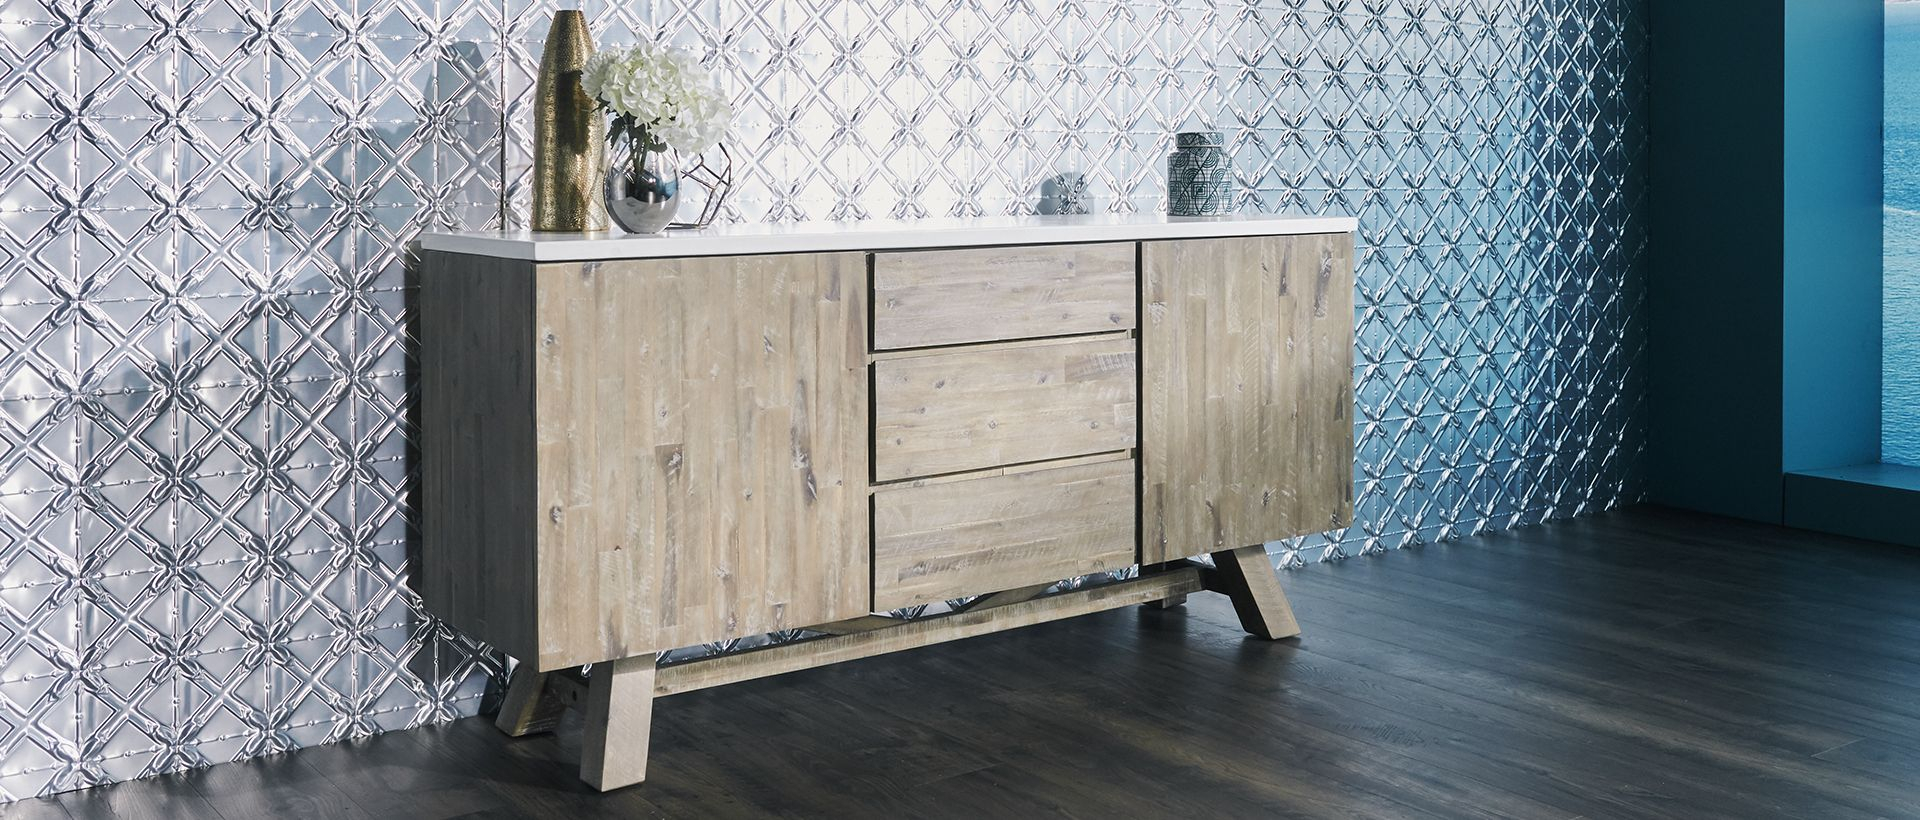 Buffets, Cabinets & Sideboards | Nick Scali within Industrial Concrete-Like Buffets (Image 9 of 30)